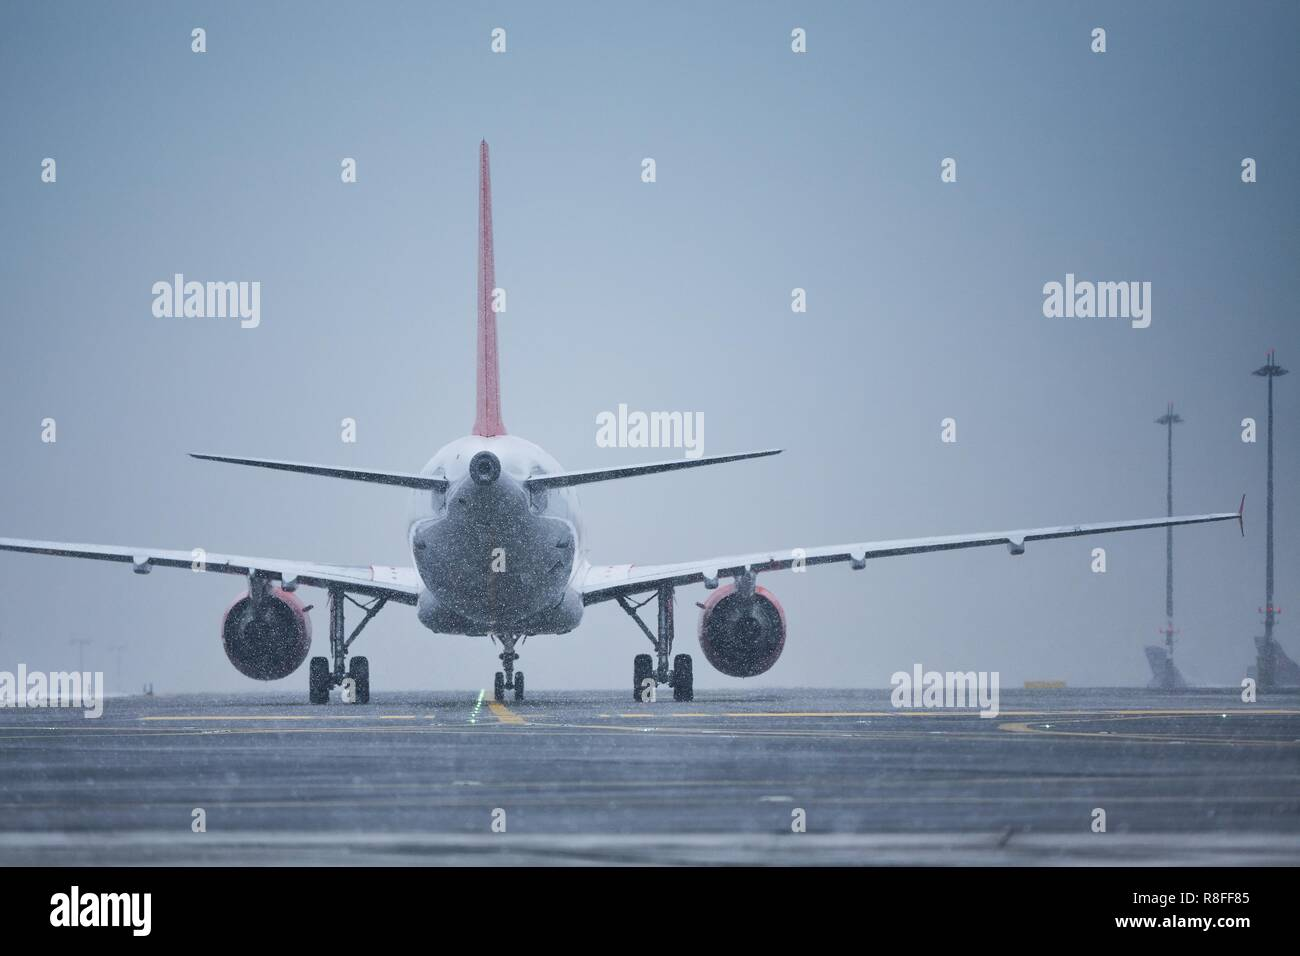 Winter day at the airport. Airplane taxiing to runway at snowing. - Stock Image